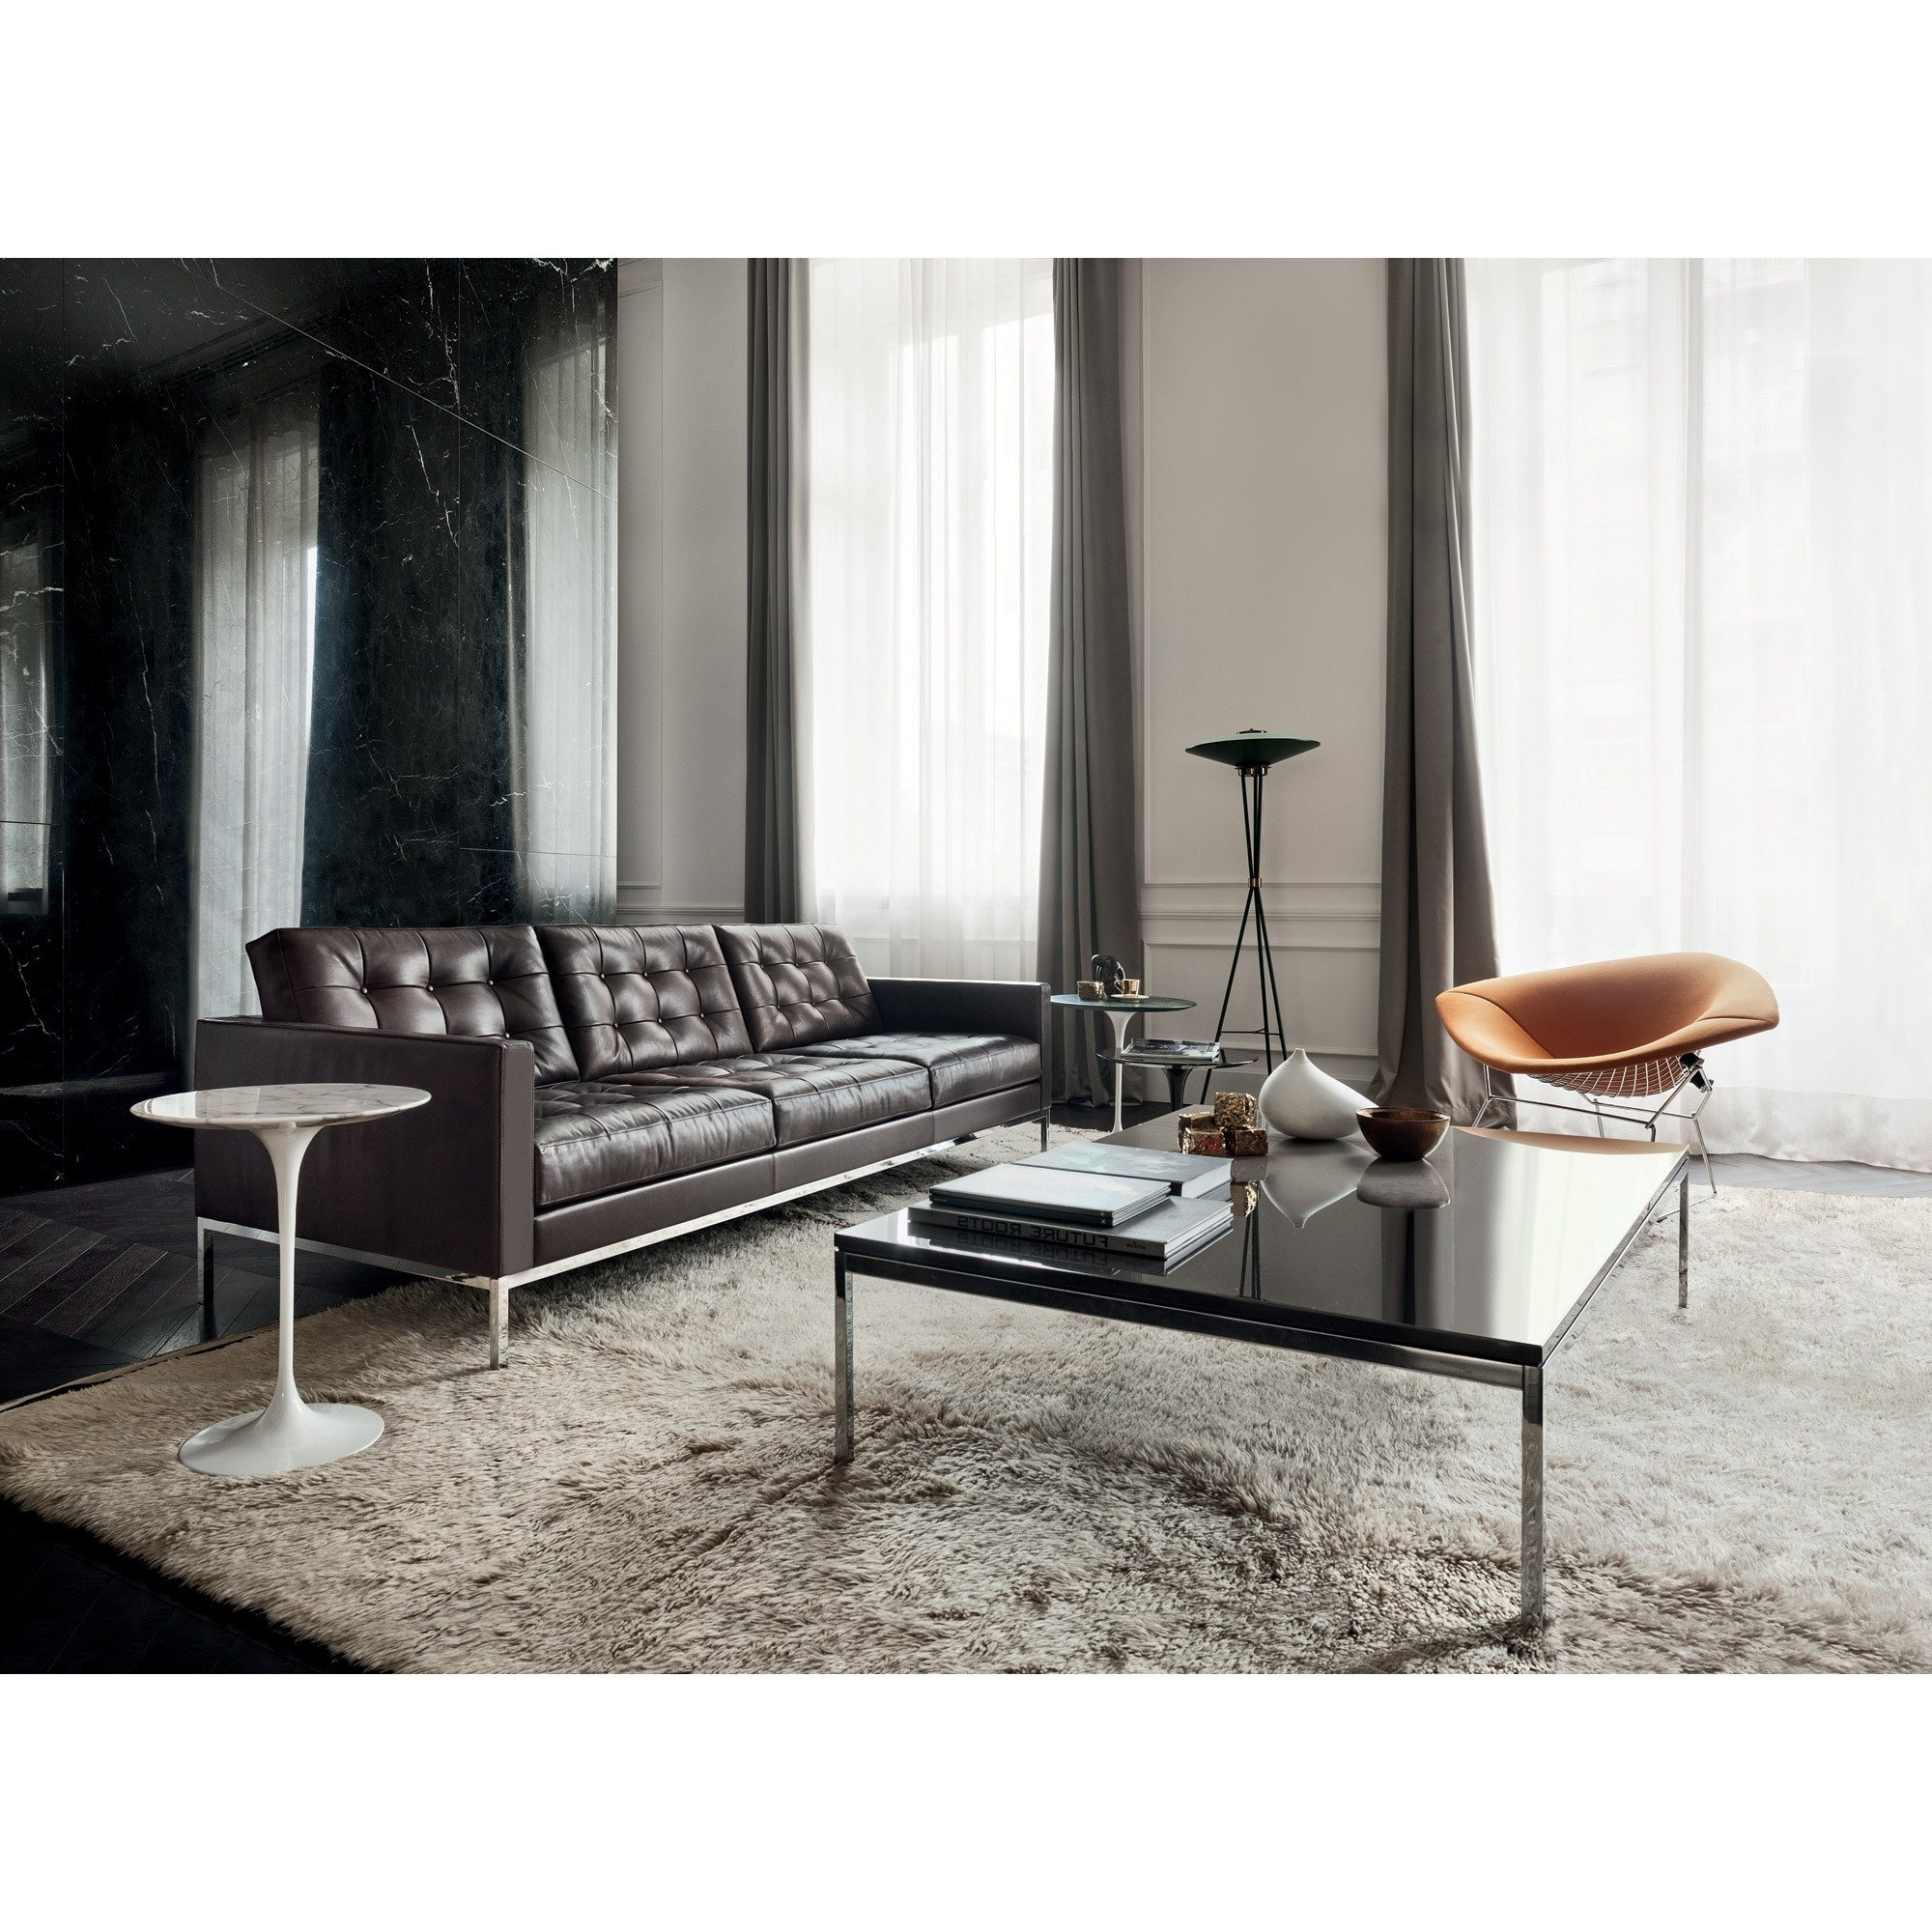 Florence Knoll 'relax' Sofa (View 5 of 20)